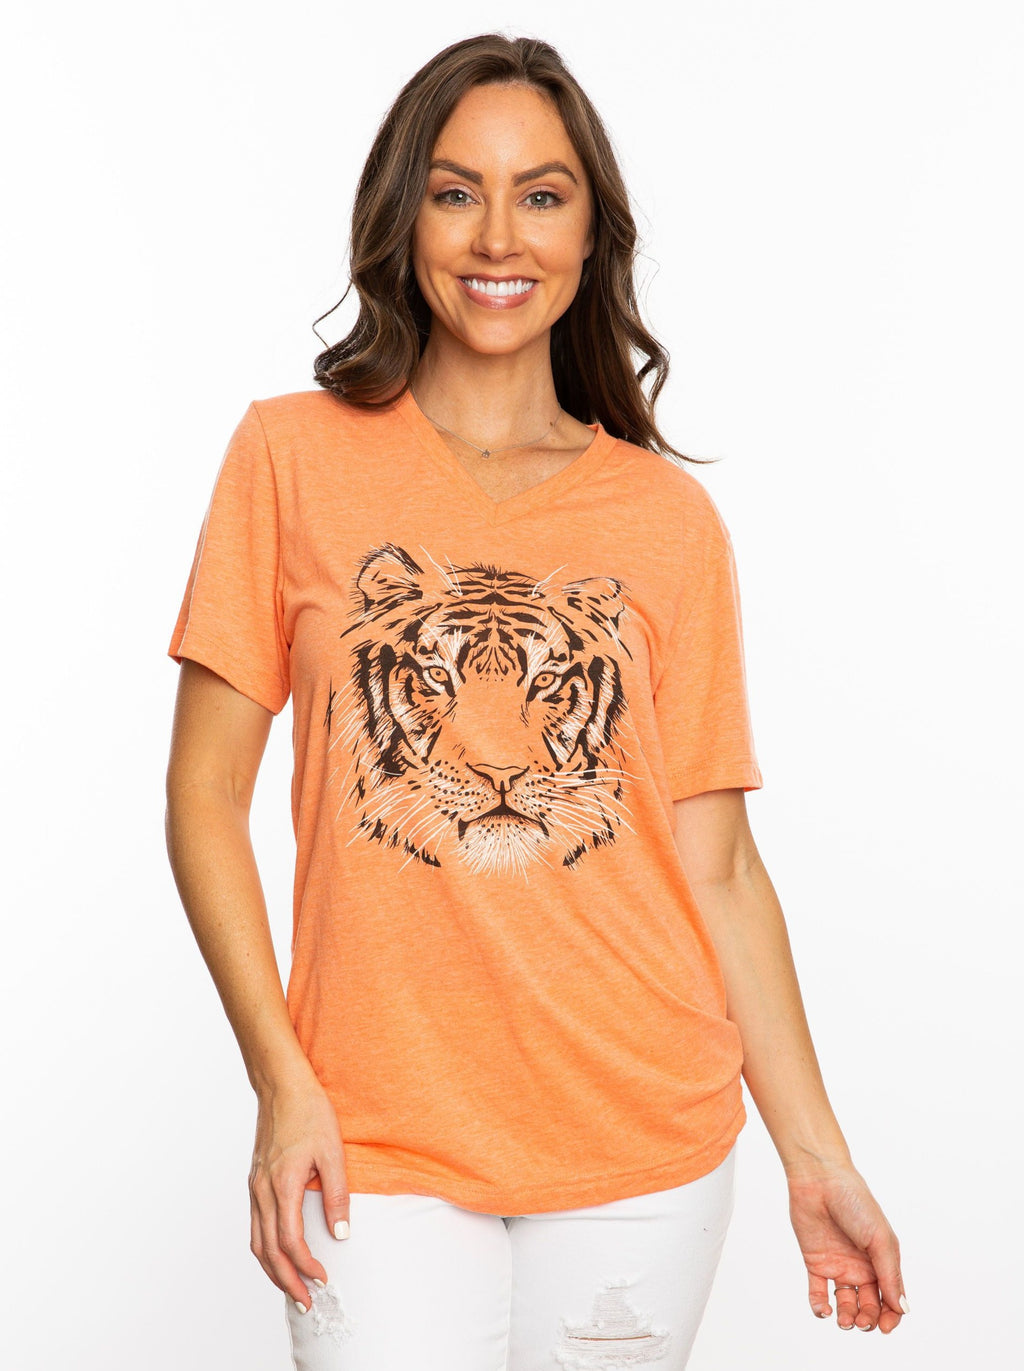 The Tiger Head V-Neck | Orange